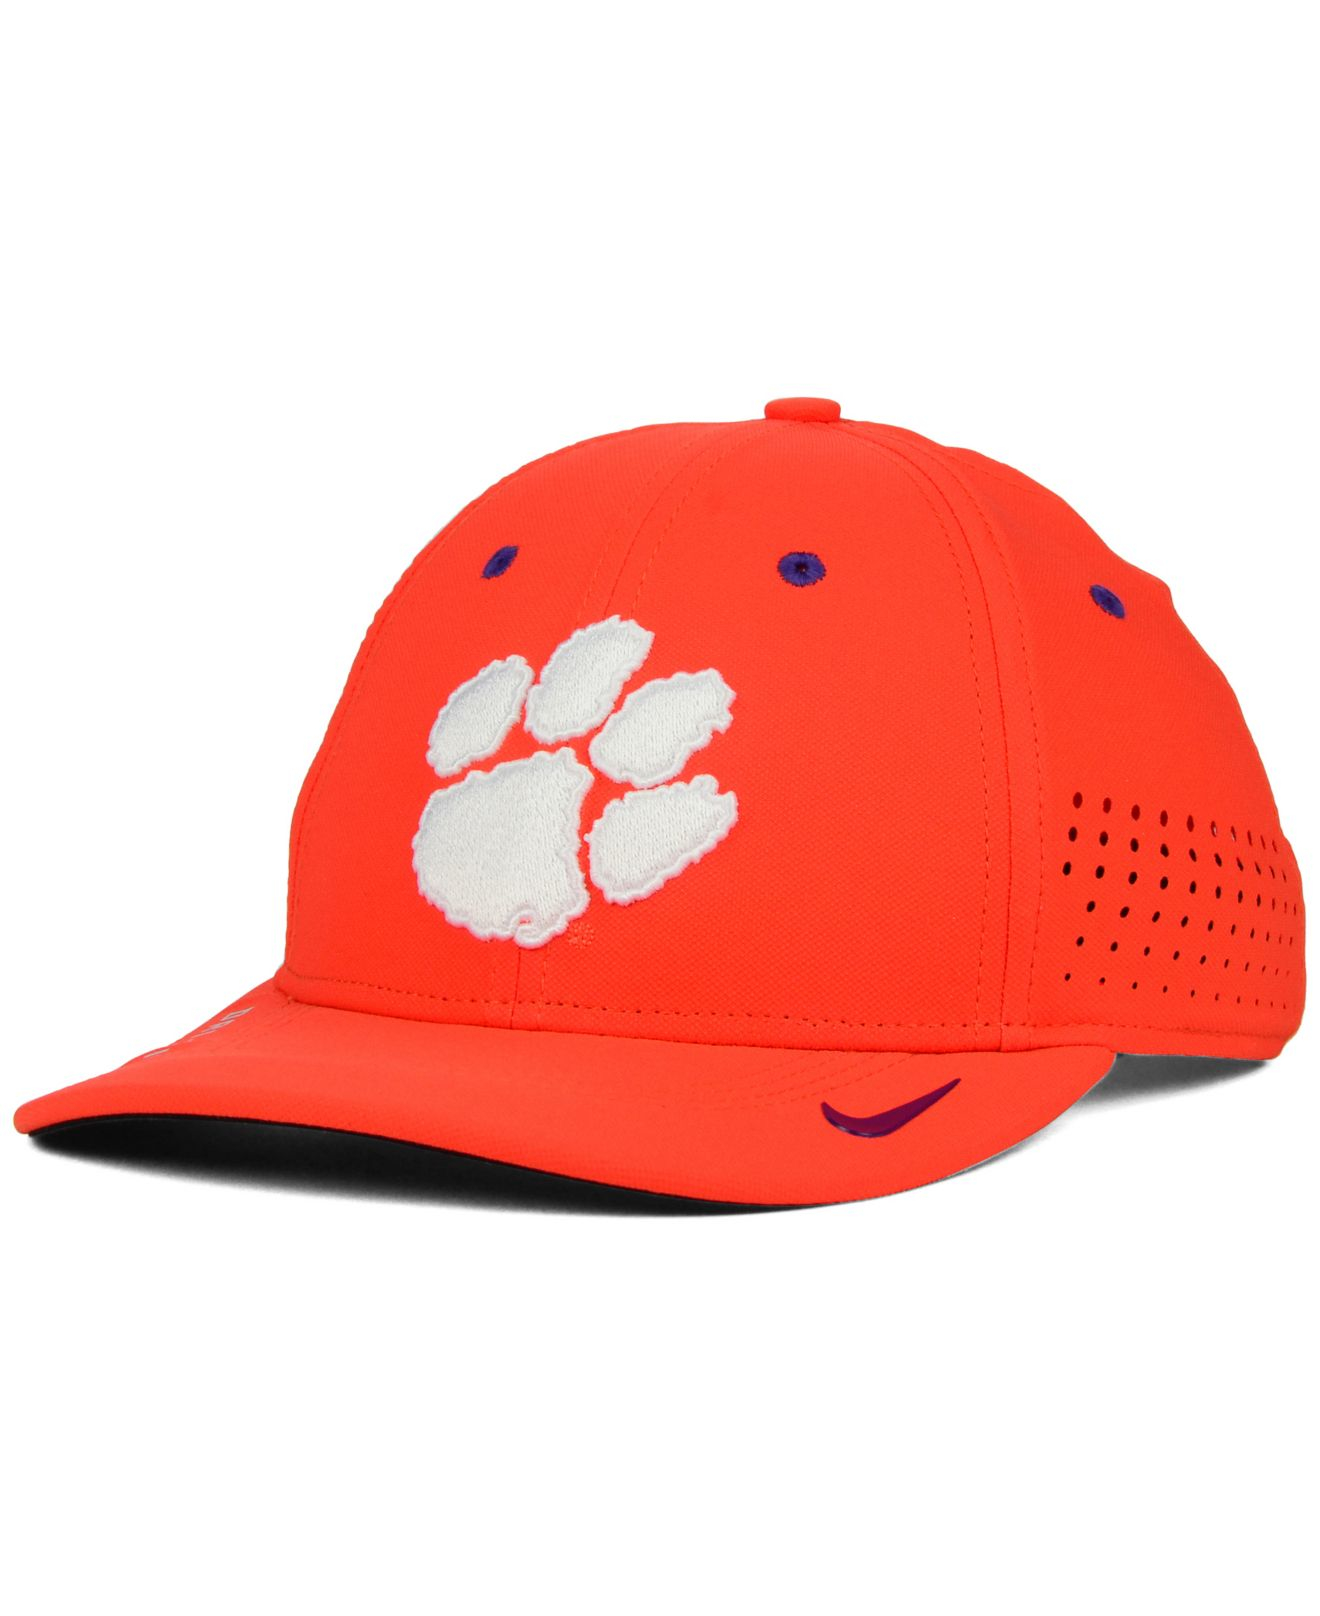 a78acca68ac ... cheapest lyst nike clemson tigers sideline cap in orange for men 3e042  a7e24